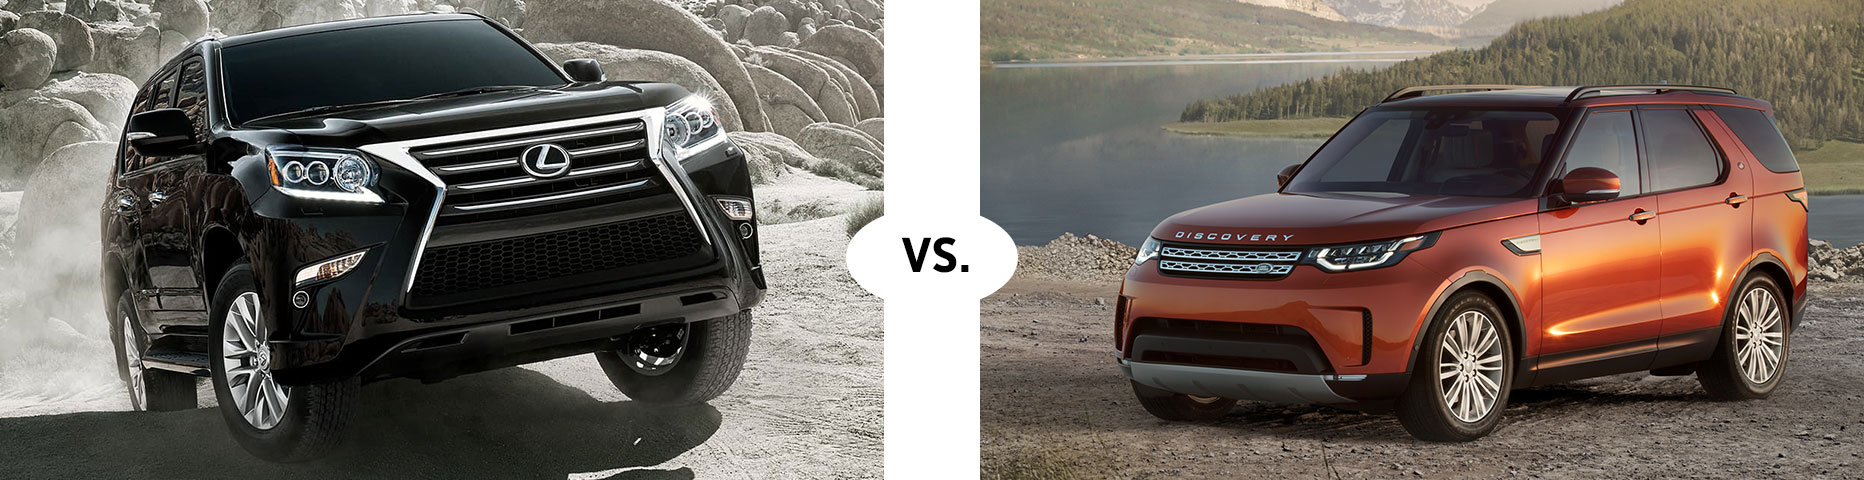 2019 LEXUS GX 460 VS. 2019 LAND ROVER DISCOVERY